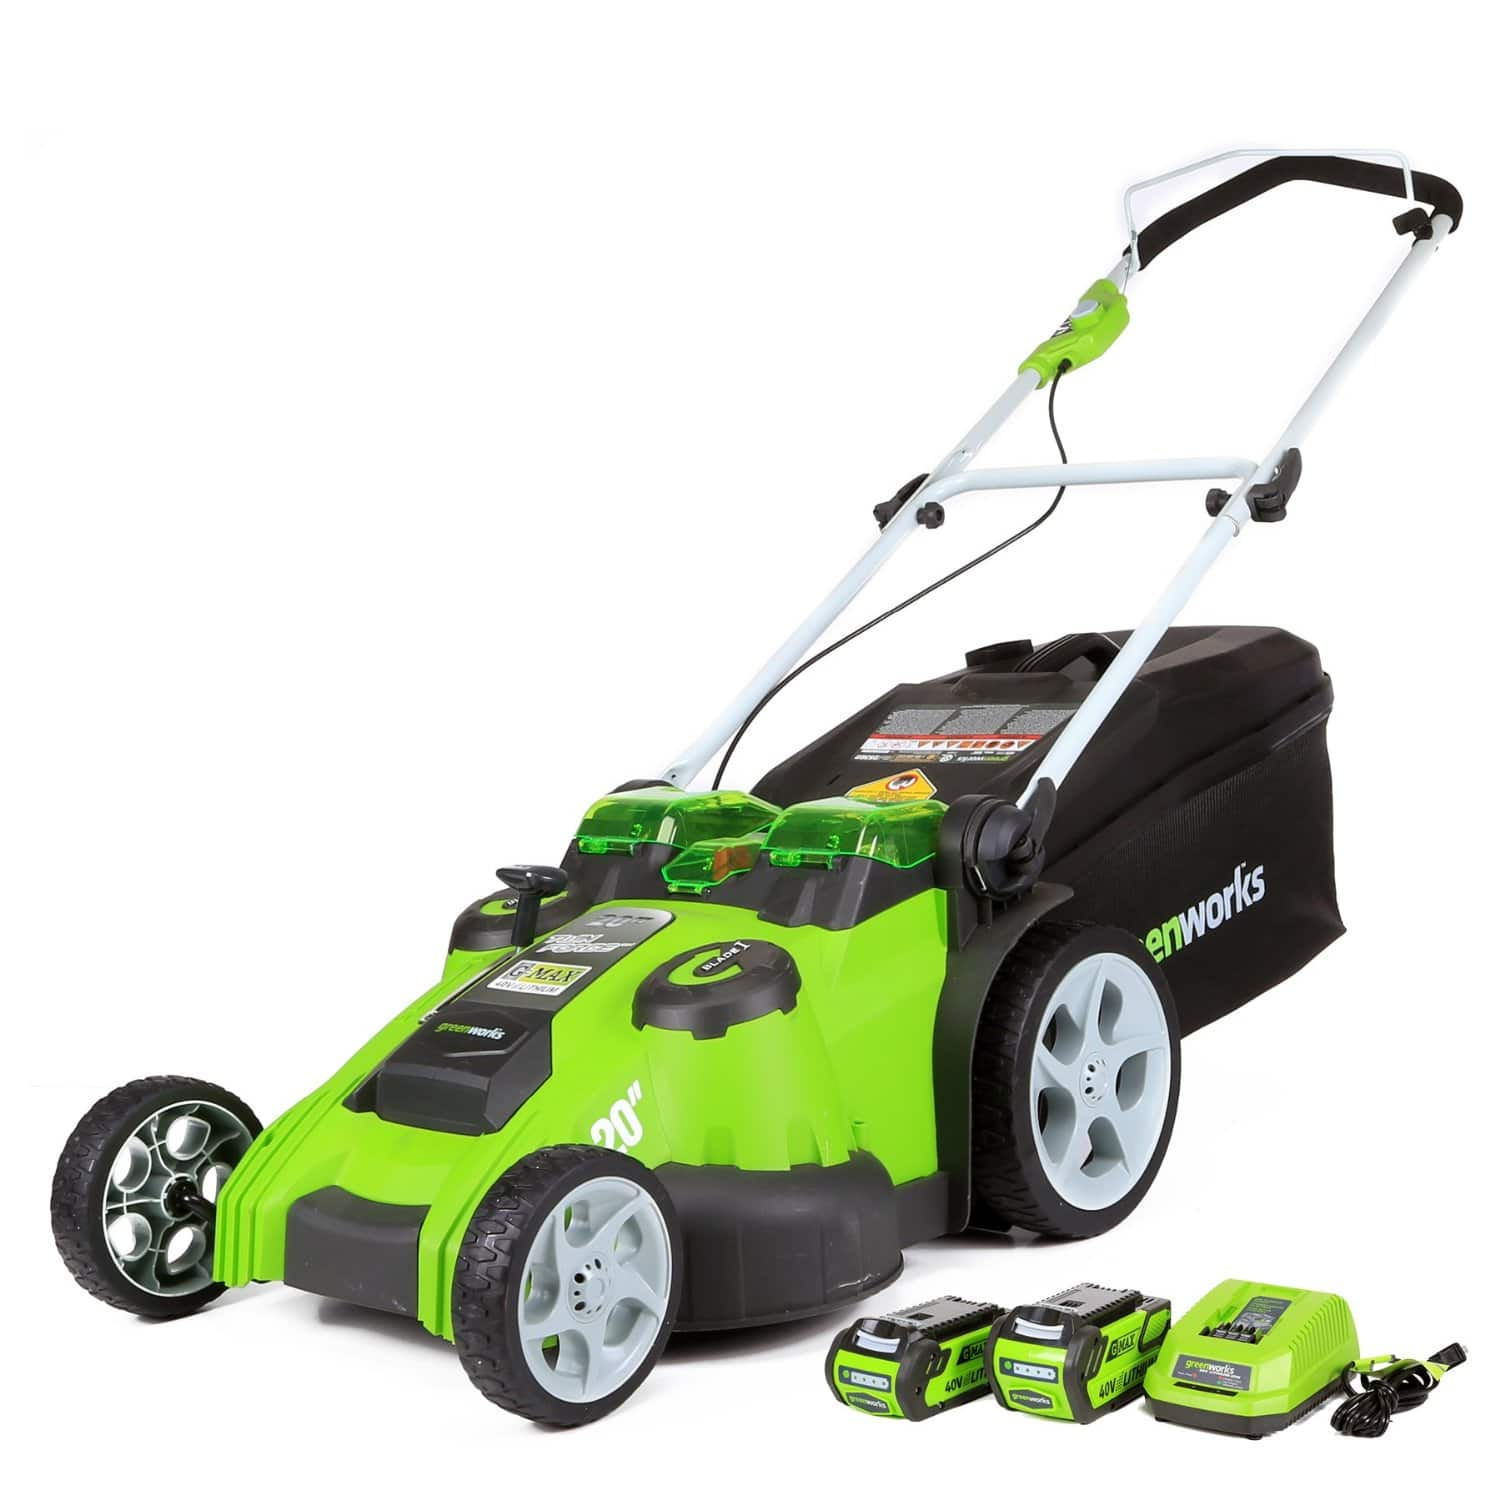 "Greenworks Twin Force 20"" 40V Li-Ion Cordless Lawn Mower w/ 2 Batteries & Charger  $289 or Less + Free S/H"